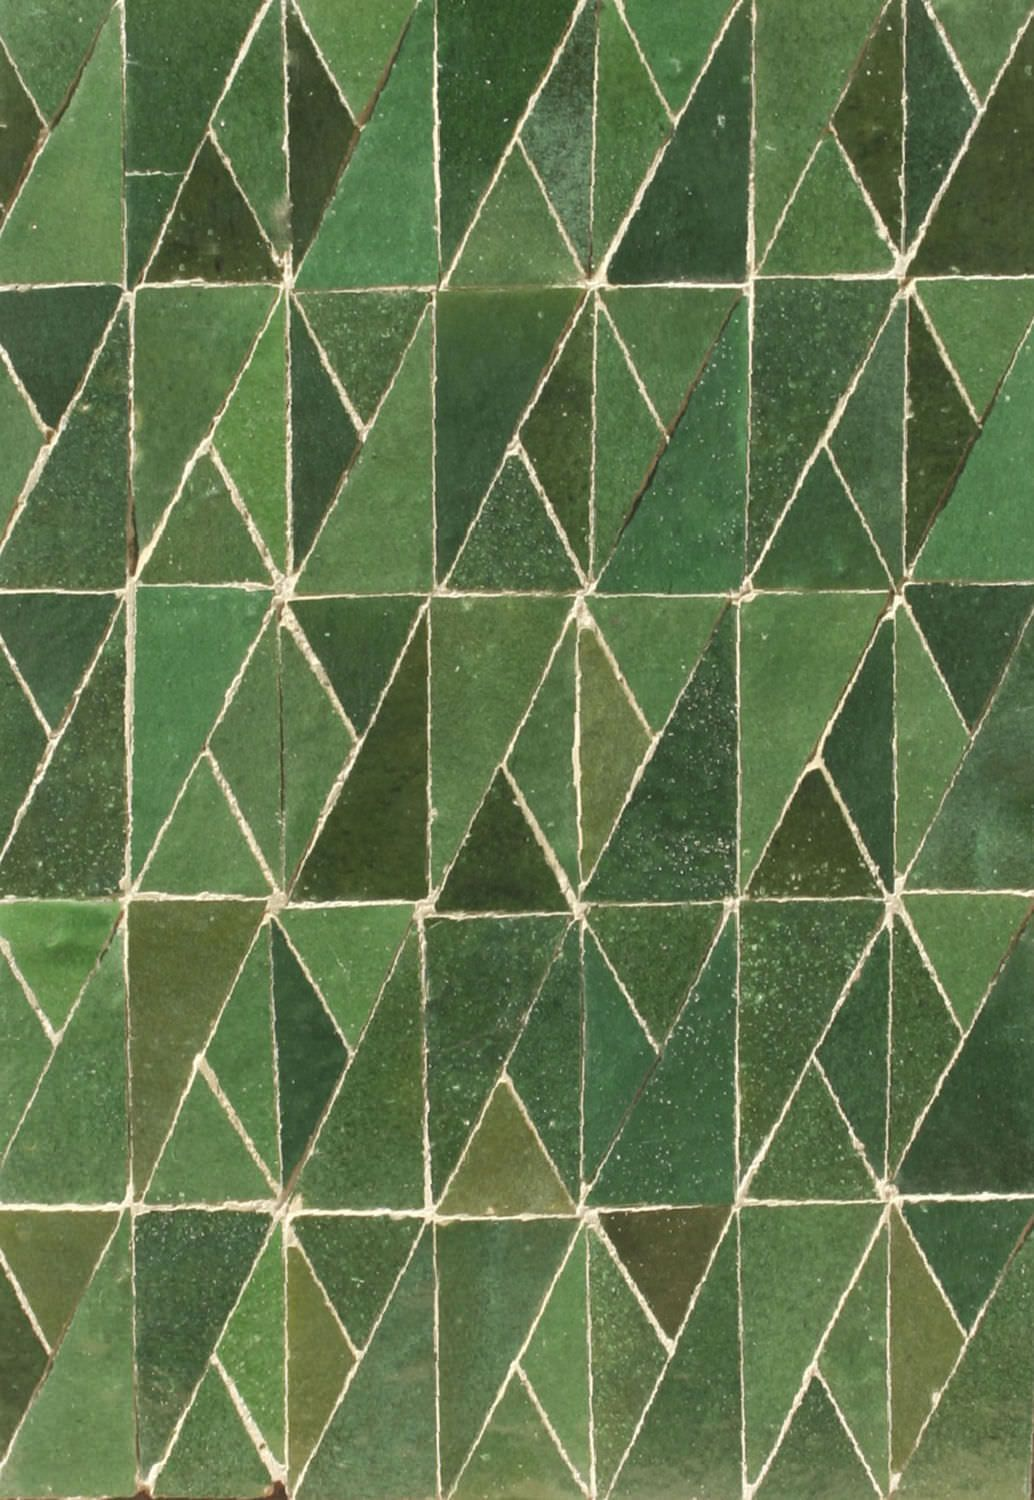 Floor tile wall mounted cement textured zelliges creative floor tile wall mounted cement textured zelliges creative trendy green dailygadgetfo Choice Image